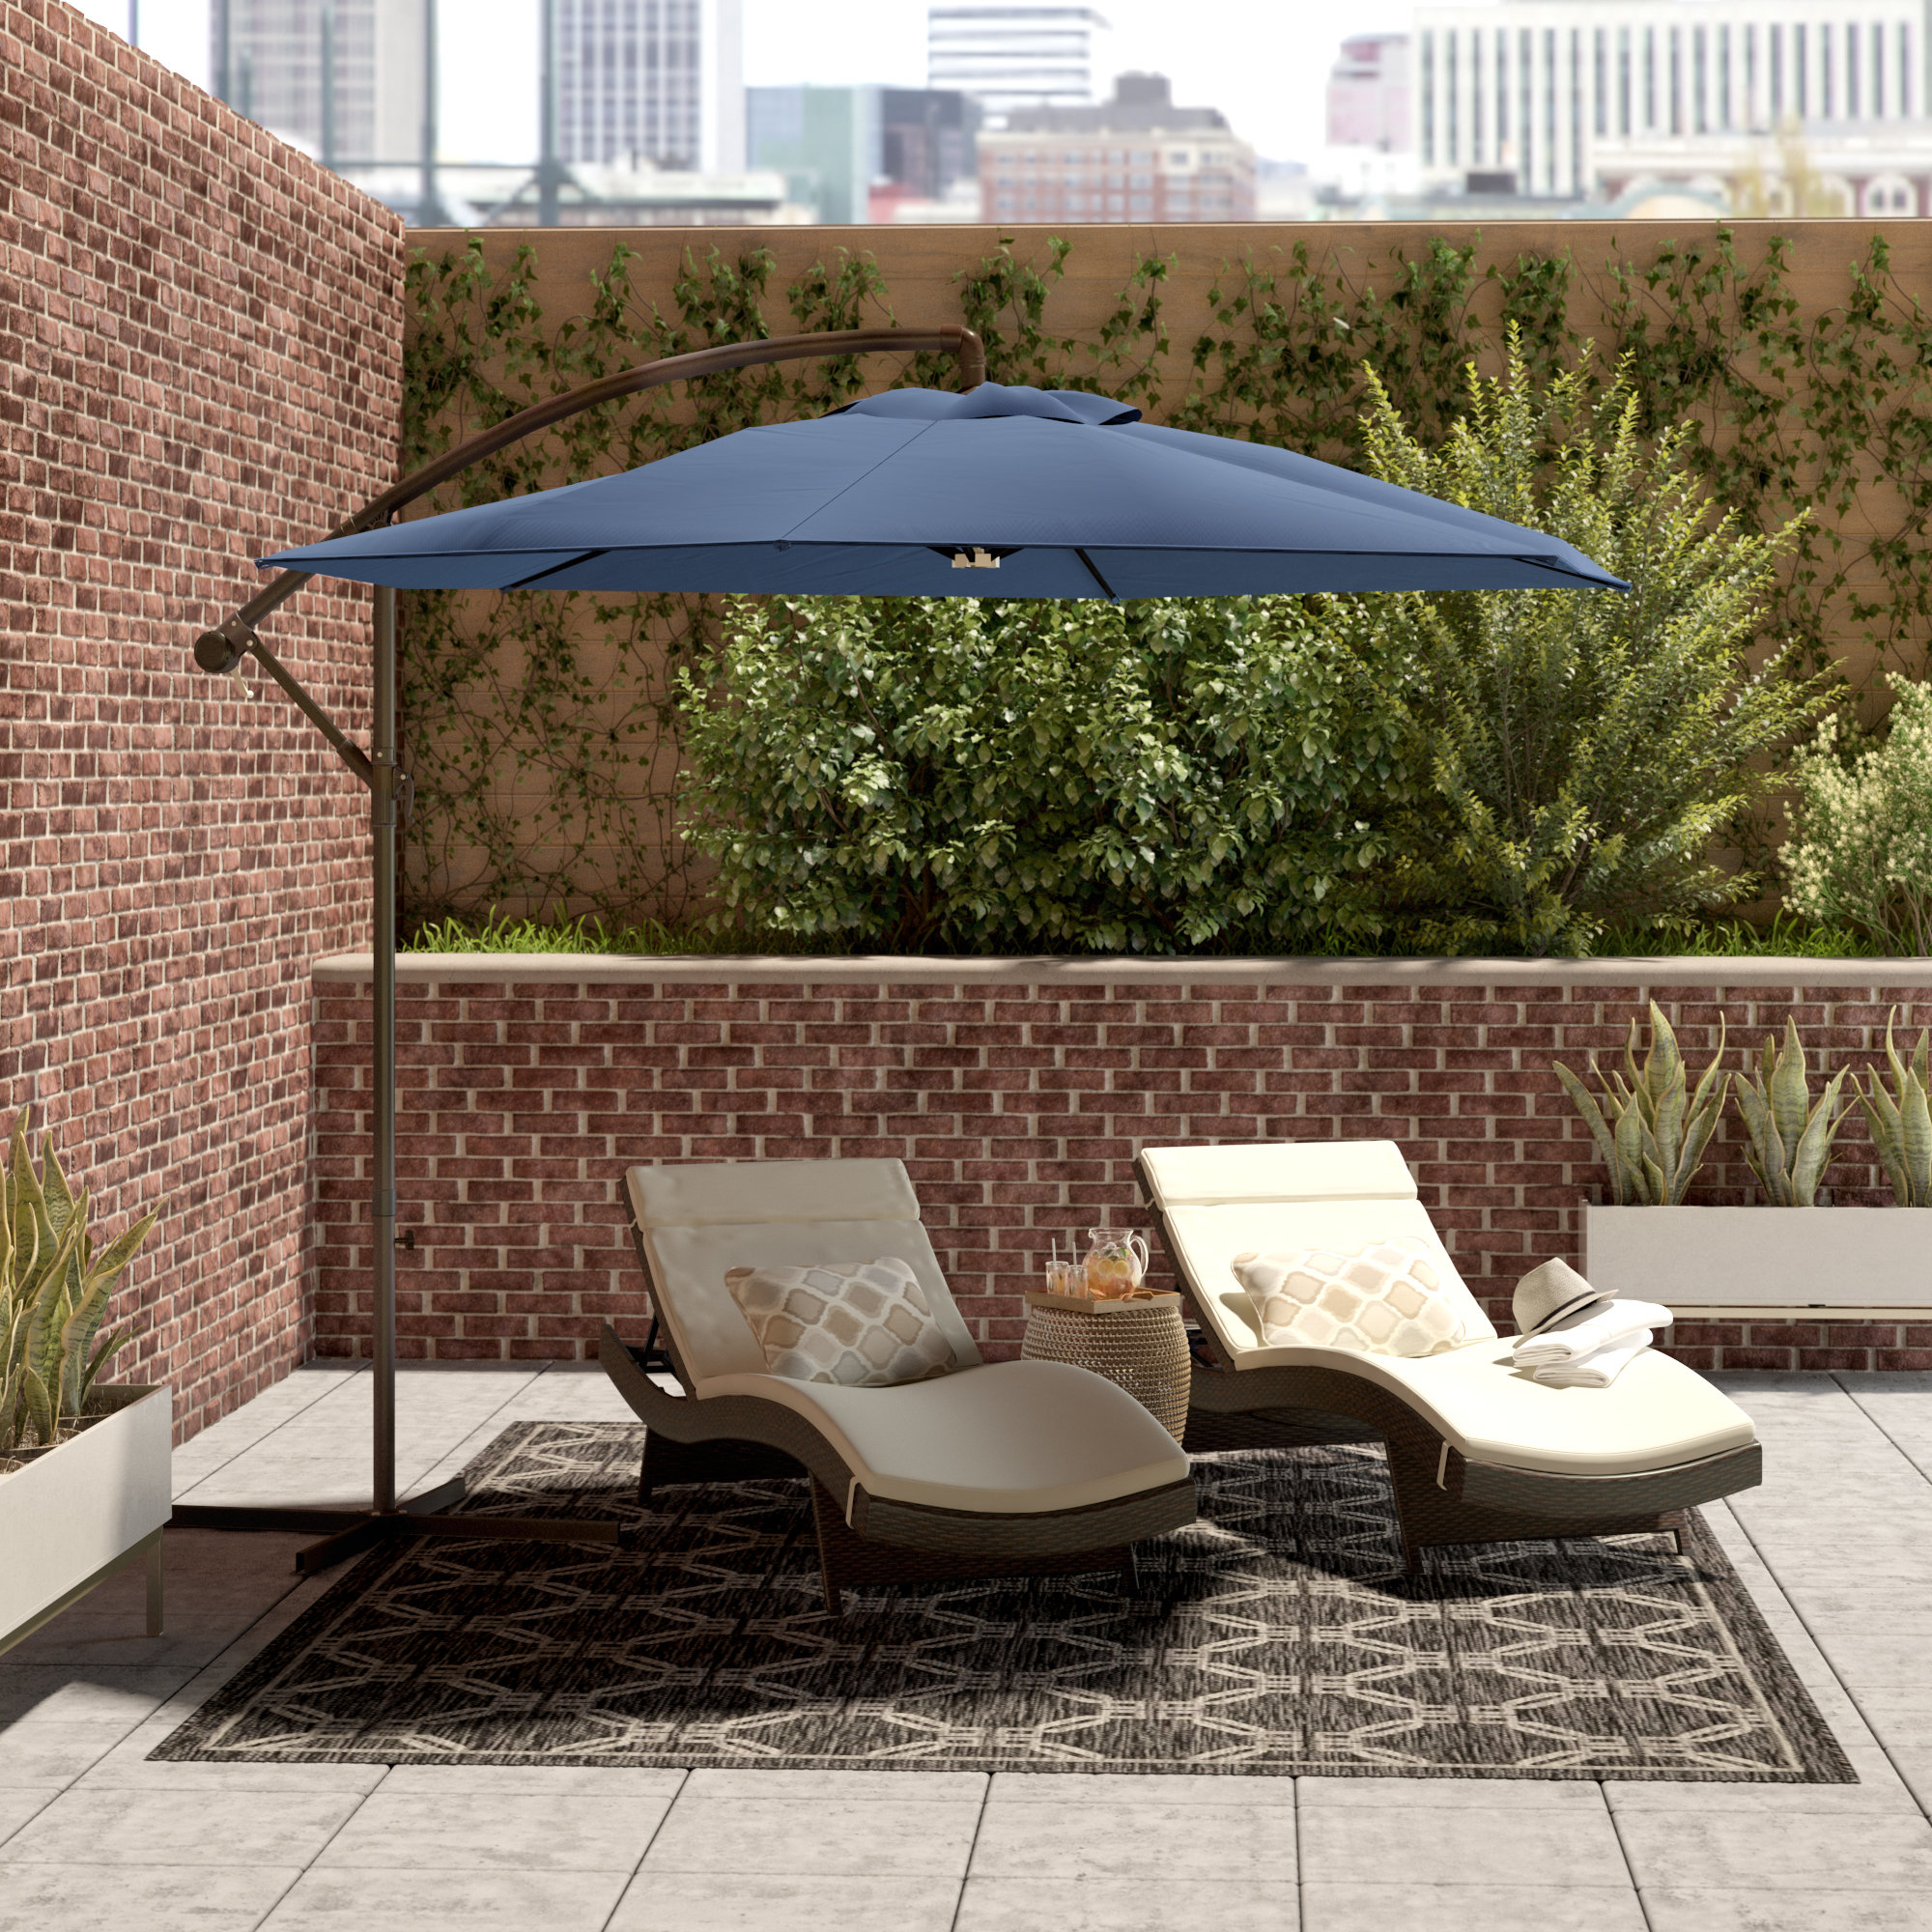 Muhammad Fullerton Cantilever Umbrellas With Regard To Most Recently Released 10' Cantilever Umbrella (View 15 of 20)